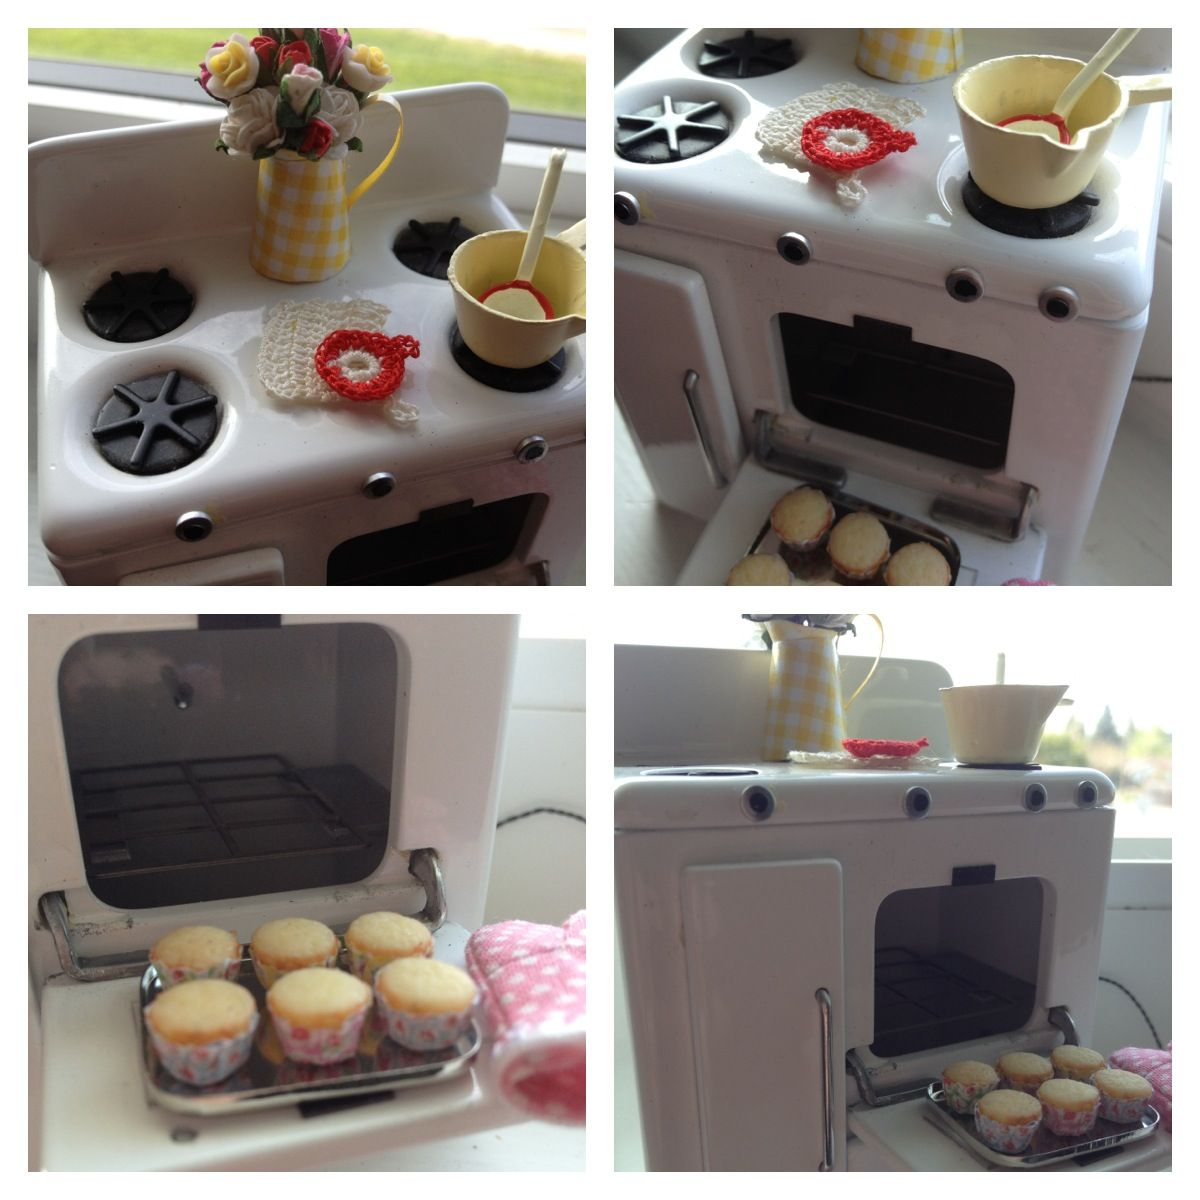 1 12 scale gas stove perfect for baking mini cupcakes it u0027s a